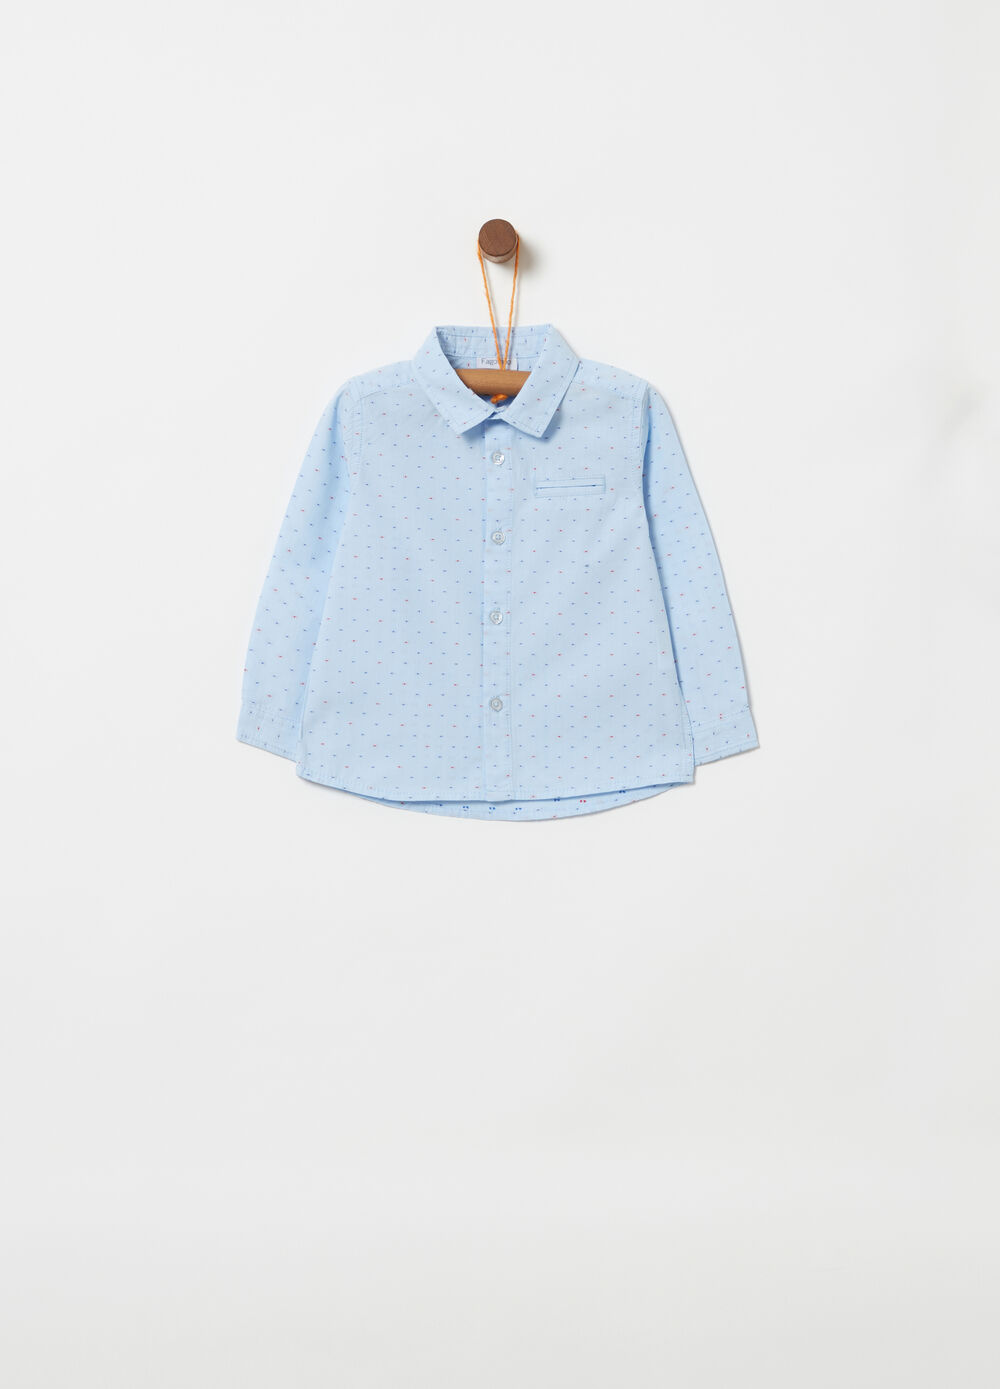 100% cotton polka dot pattern shirt